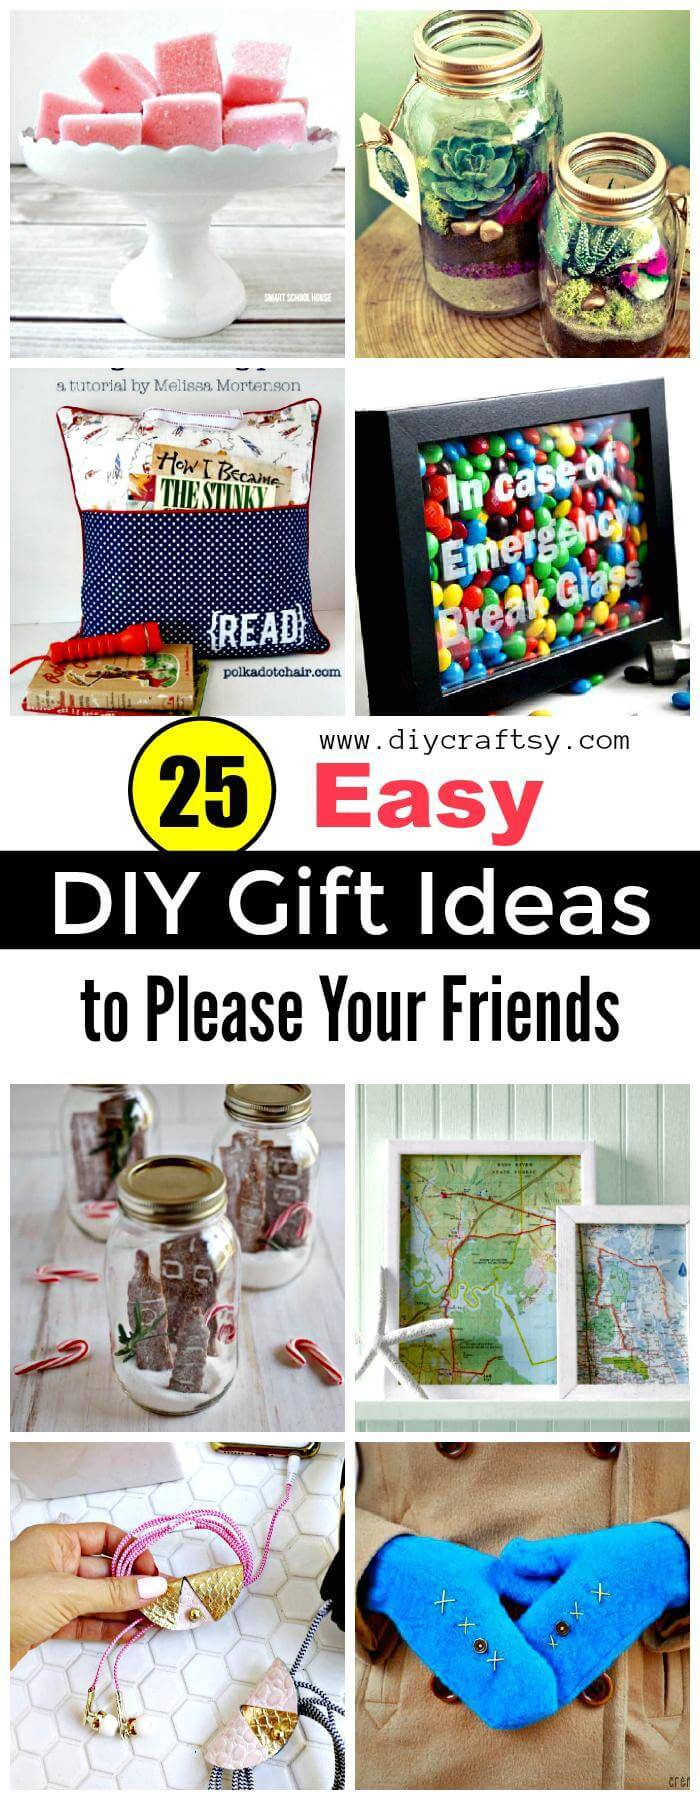 25 smart and easy diy gift ideas to please your friends diy crafts diy gift ideas negle Images